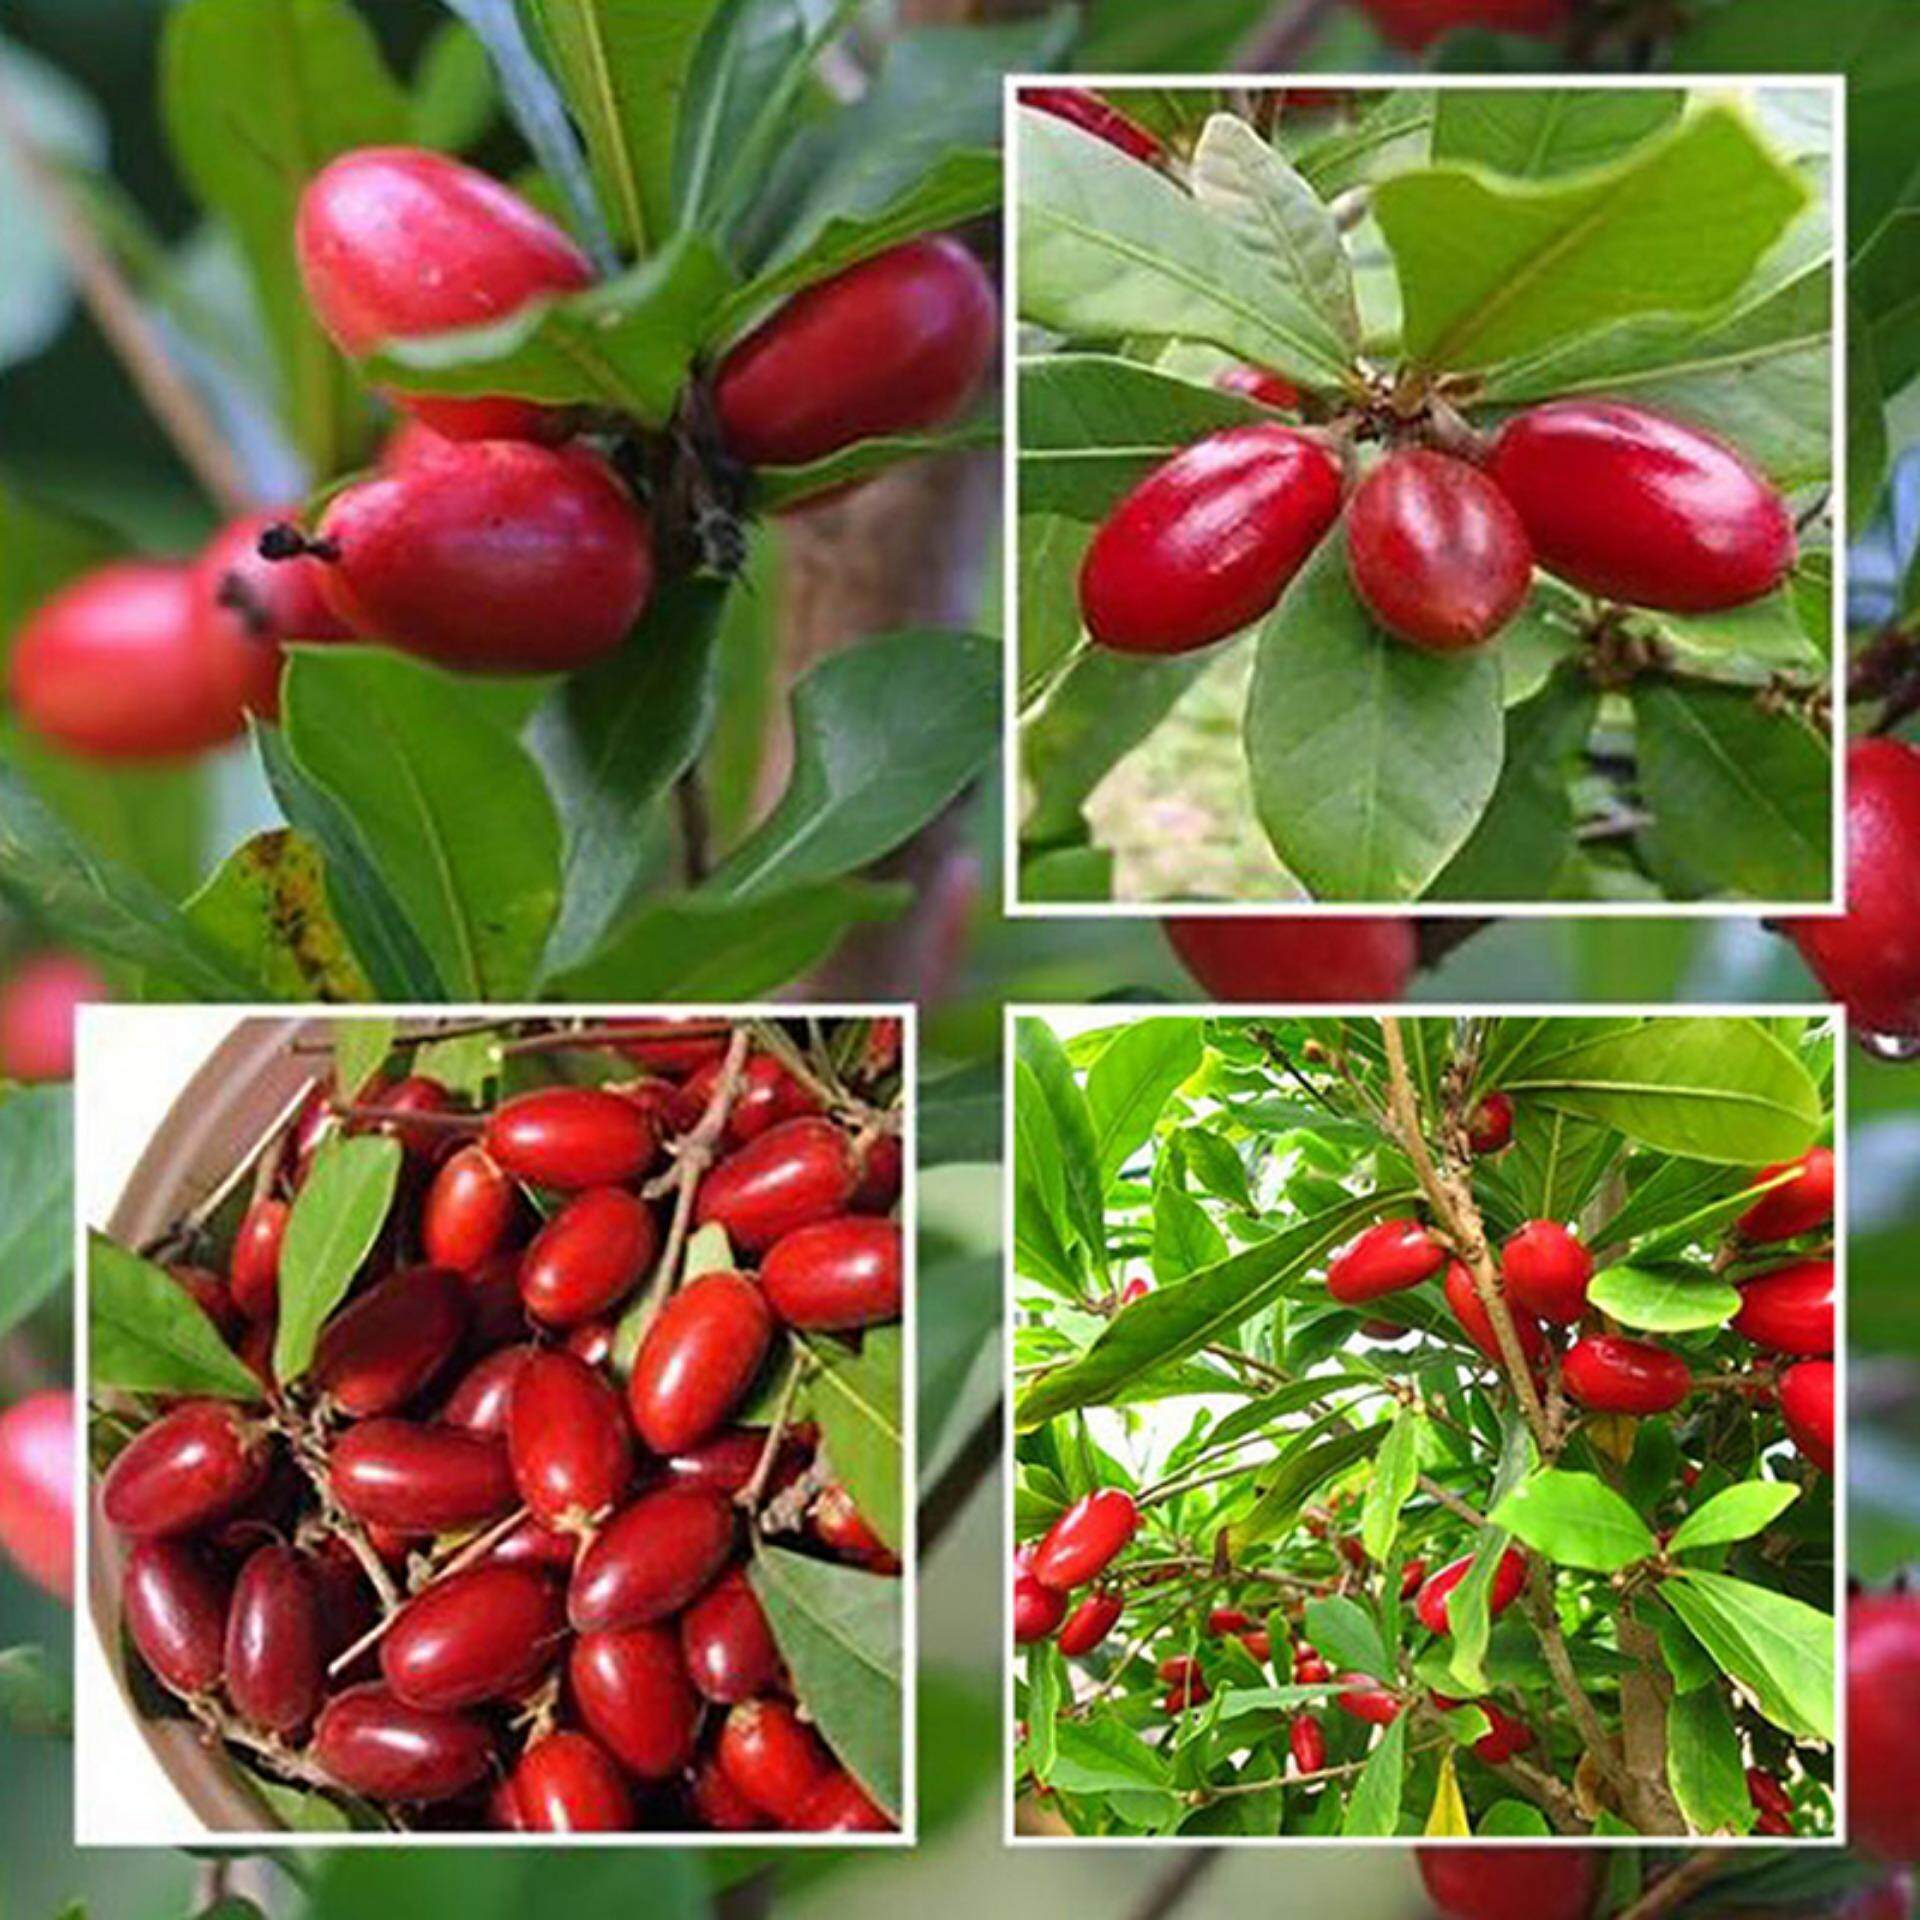 Sissi 10x miracle fruit seed synsepalum dulcificum tropical exotic berry rare seasonal